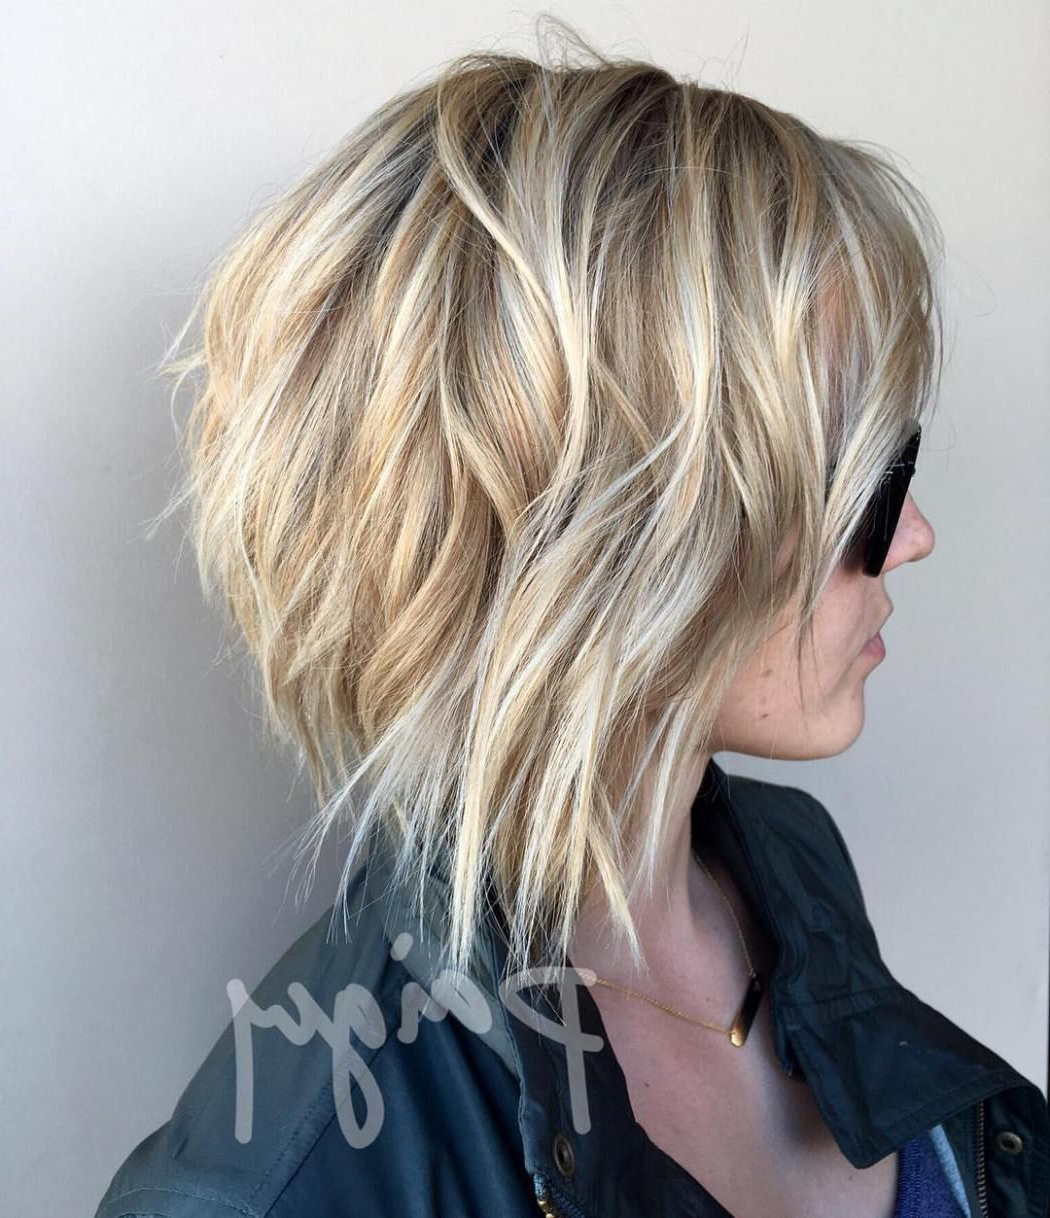 70 Fabulous Choppy Bob Hairstyles In 2018 | Hairstyles | Pinterest With Choppy Golden Blonde Balayage Bob Hairstyles (View 13 of 20)